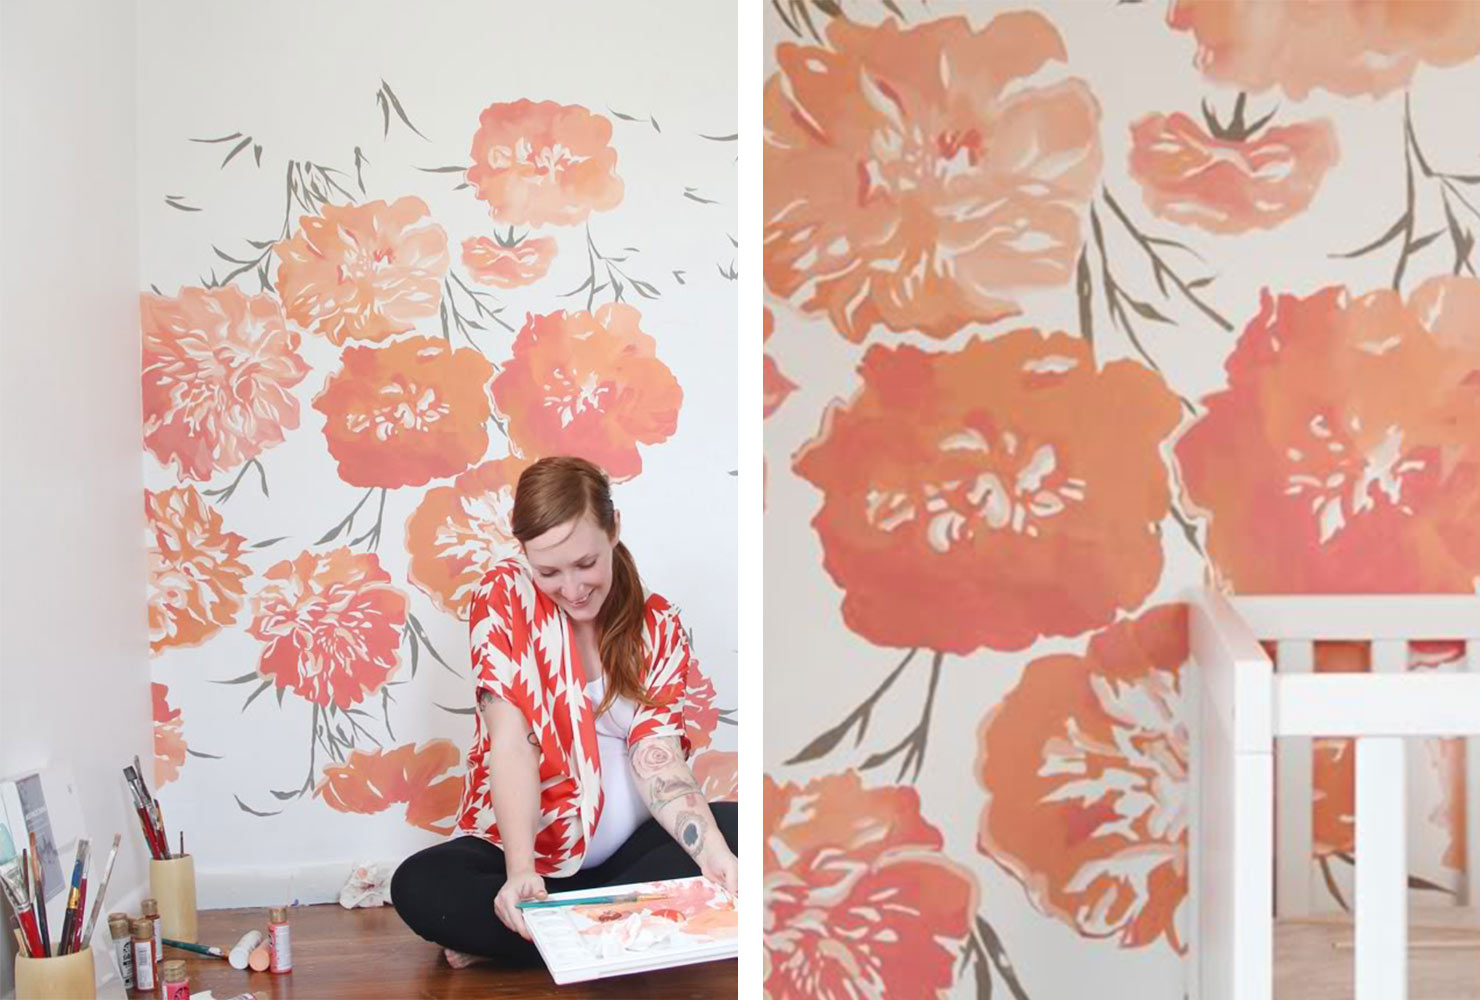 25 Unique Diy Wall Art Ideas (With Printables) | Shutterfly Within Floral Patterned Over The Door Wall Decor (Photo 24 of 30)